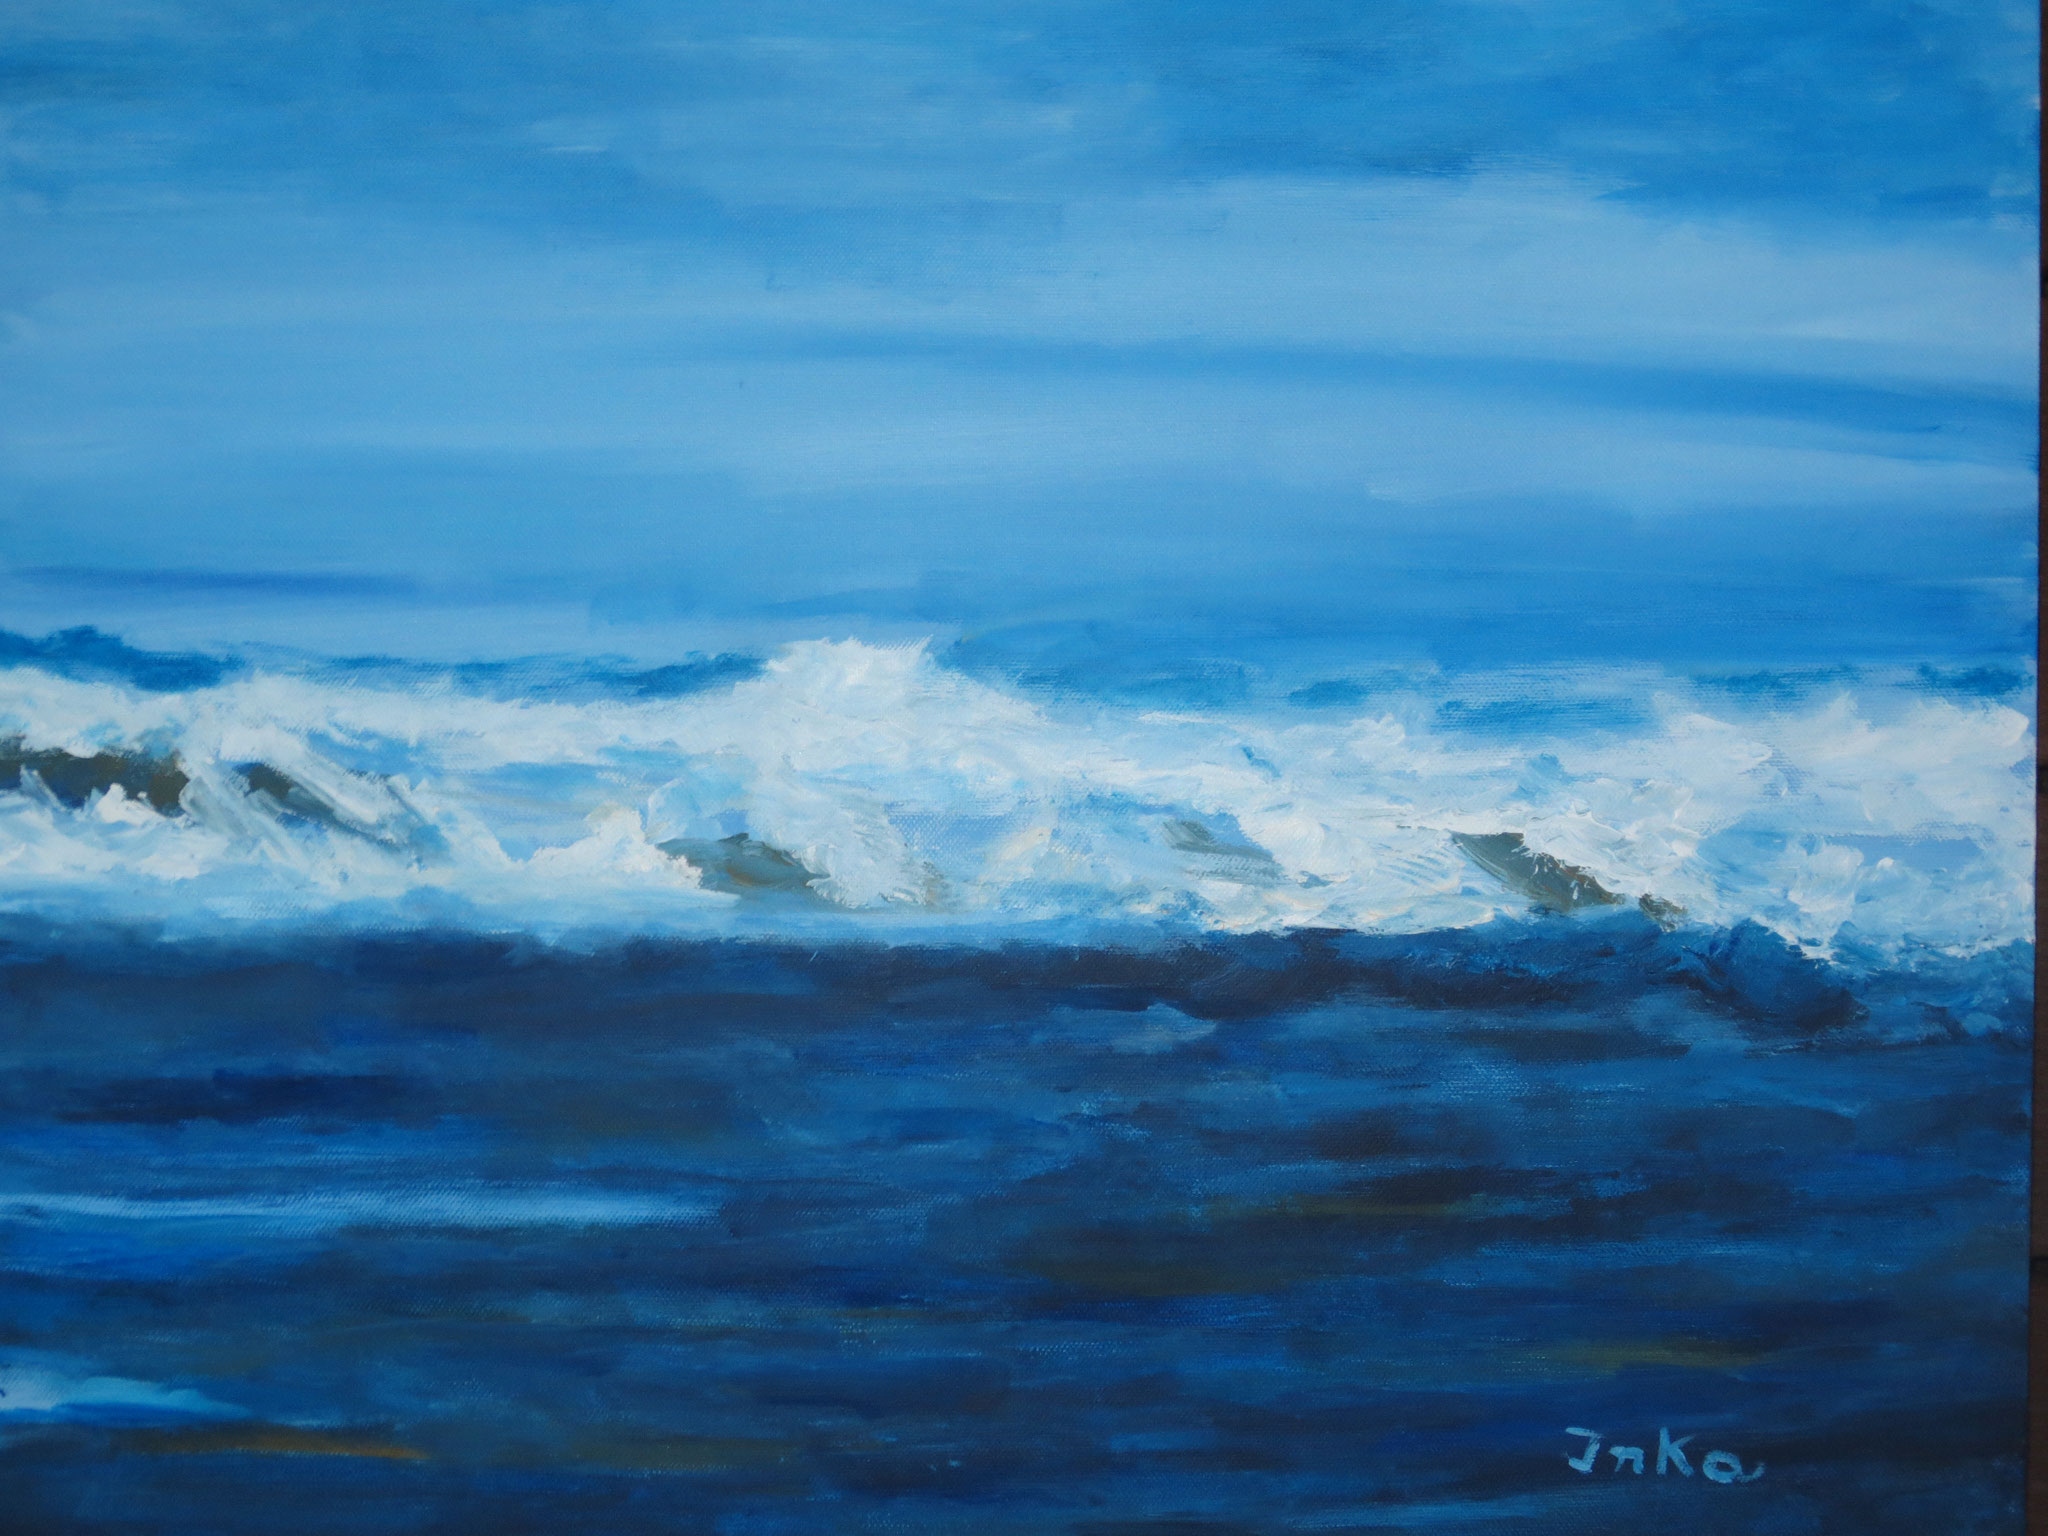 Tosendes Meer (60 x 50)